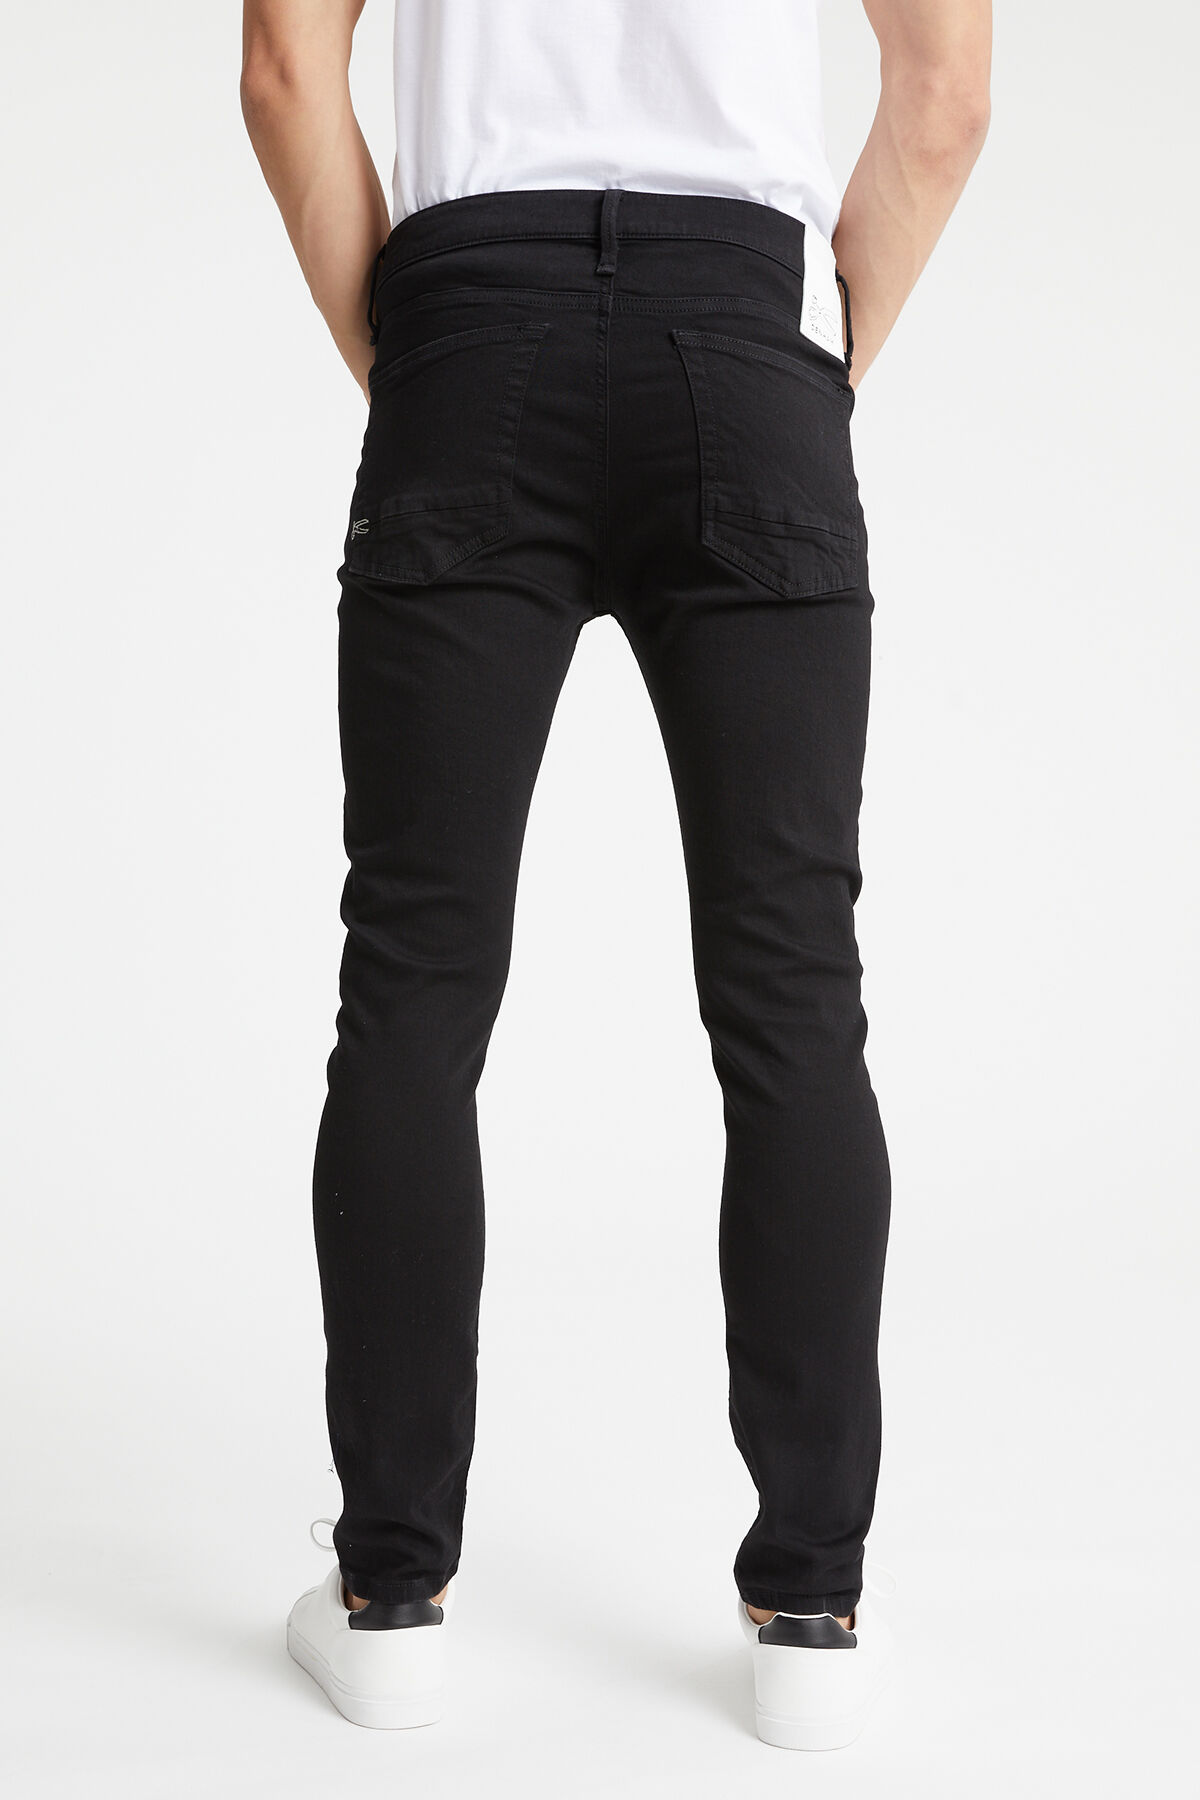 BOLT Stretch Black Denim - Skinny Fit